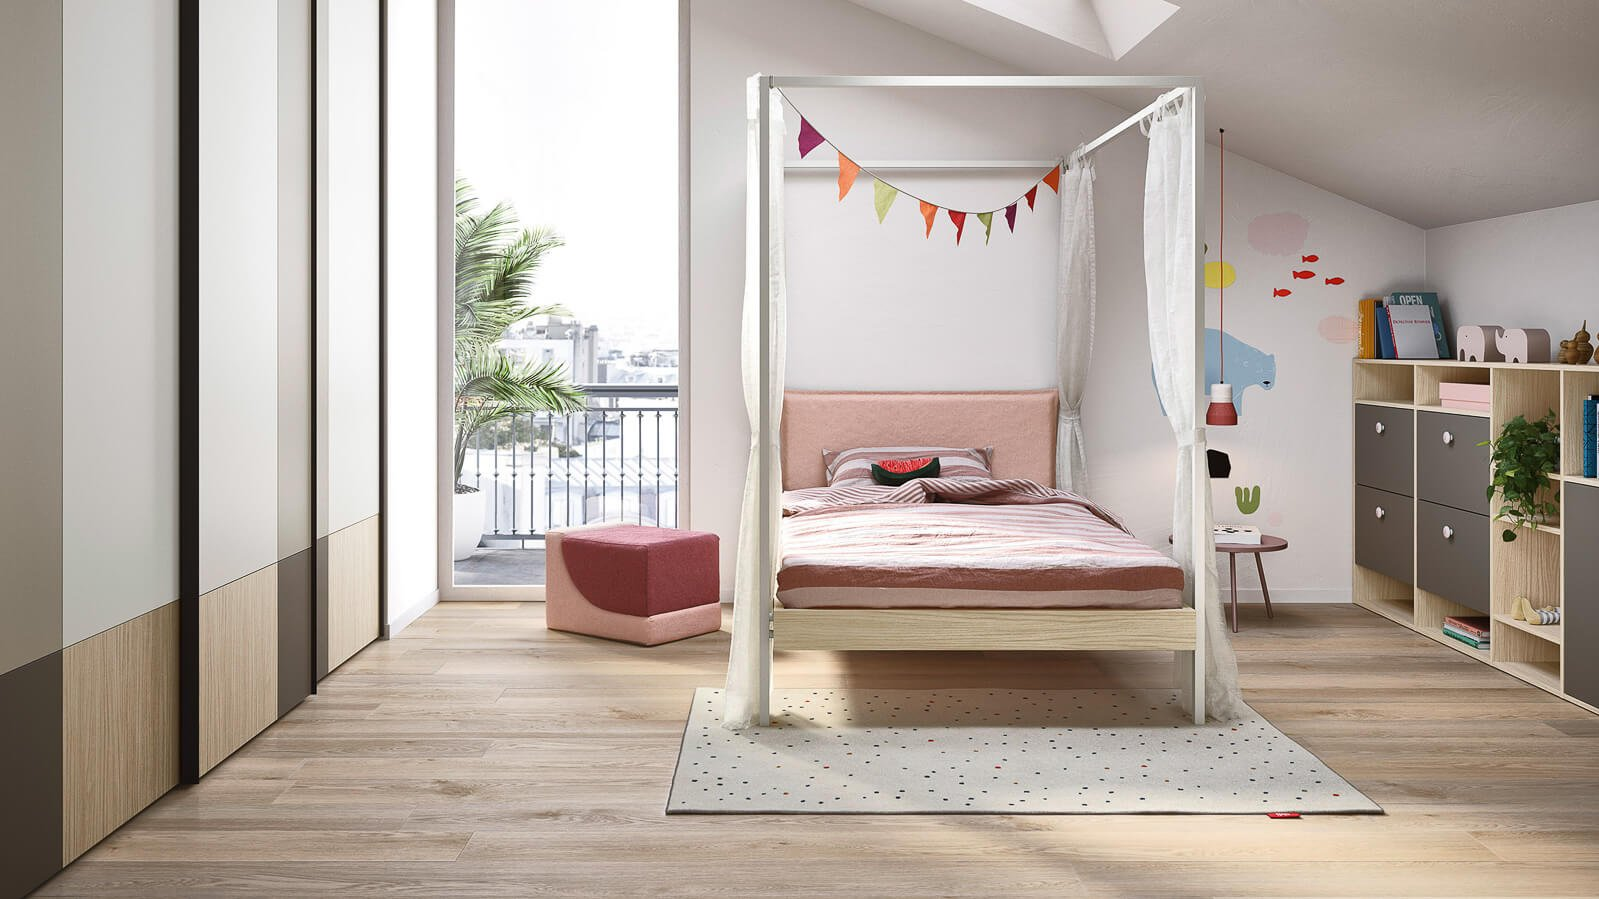 Kap four-poster bed